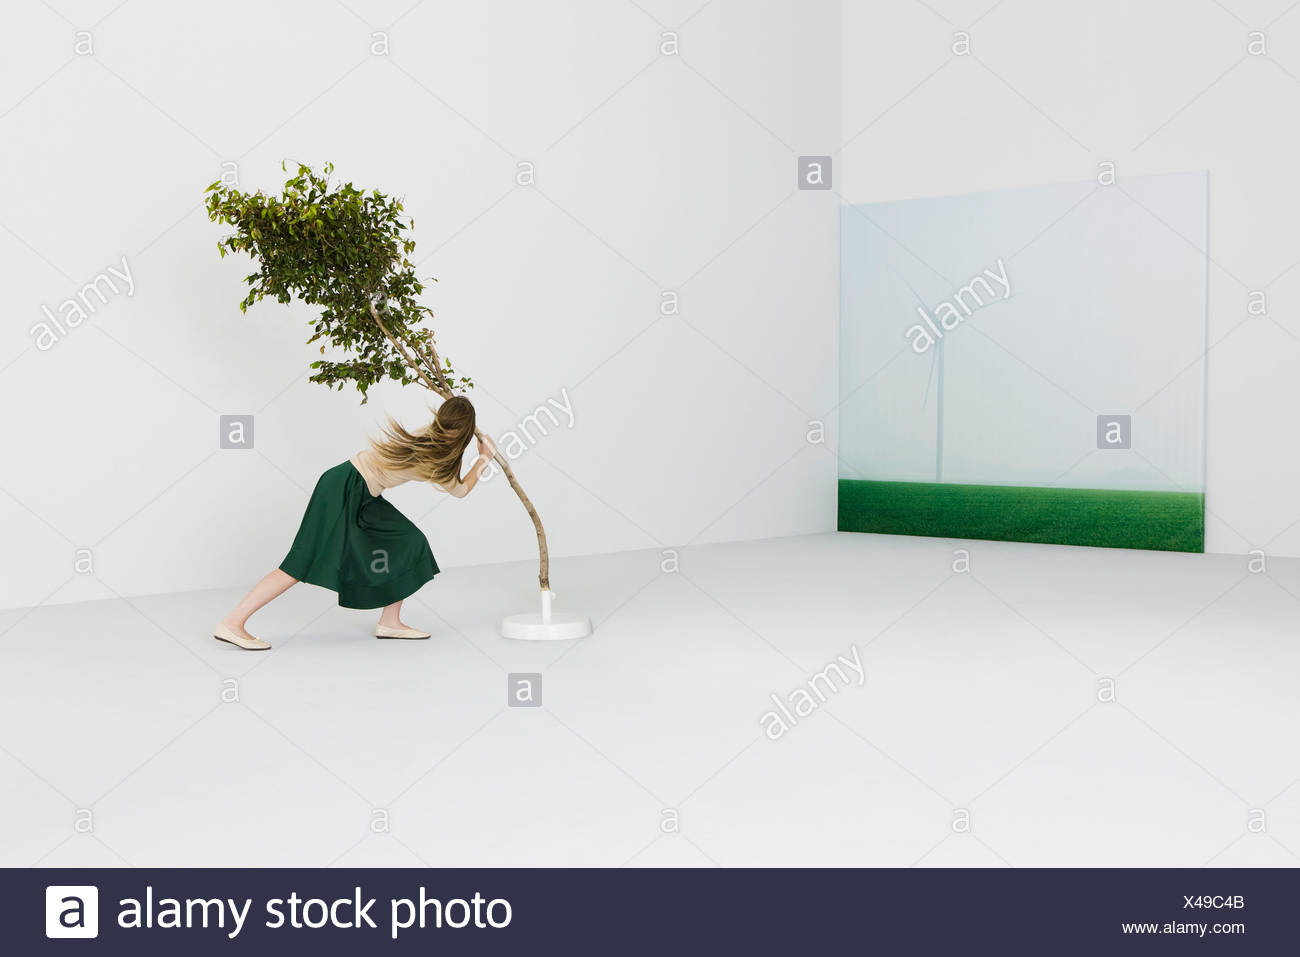 Woman struggling against strong wind, holding on to leaning tree, wind turbine in background - Stock Image